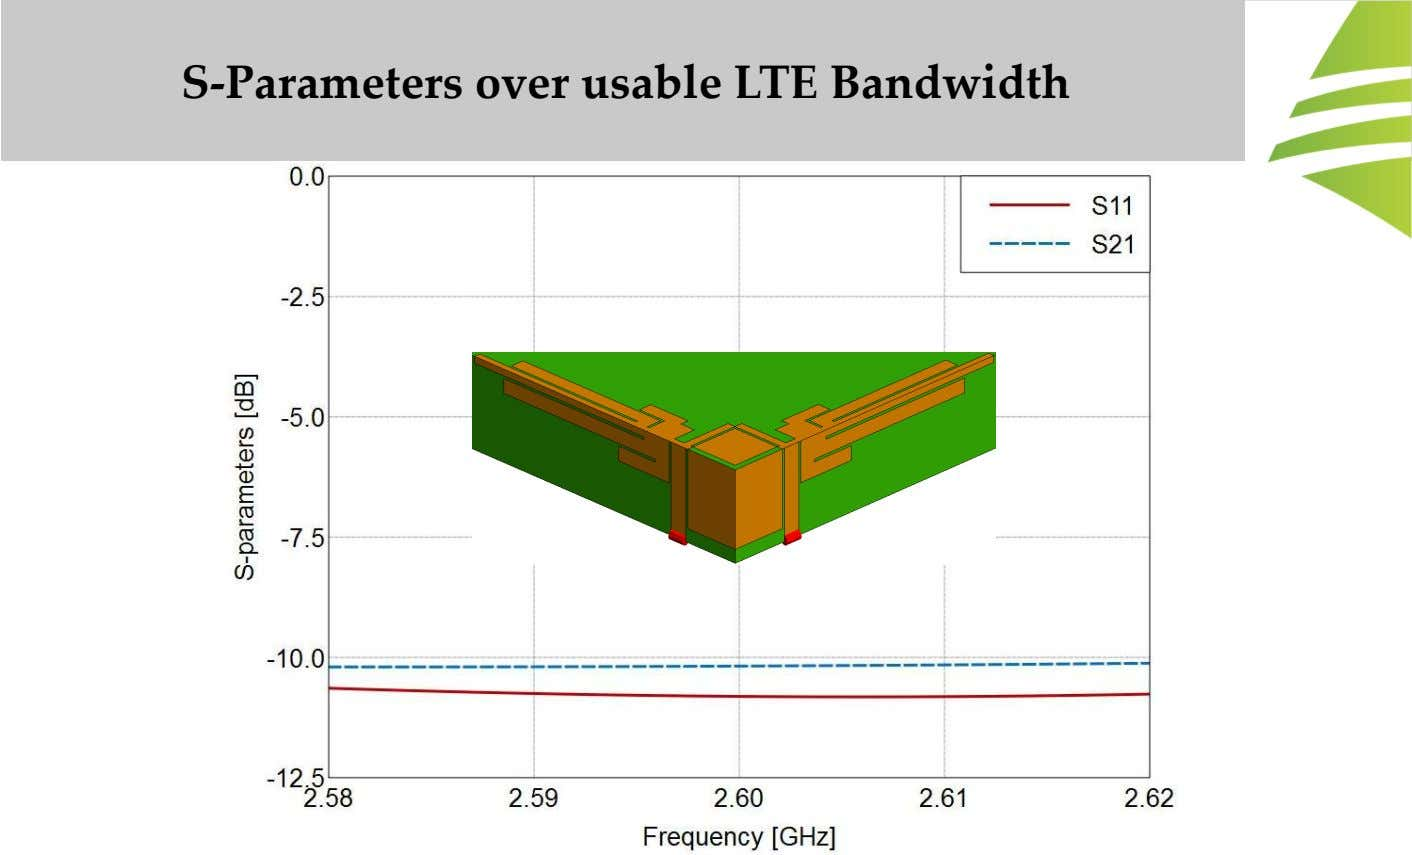 S-Parameters over usable LTE Bandwidth